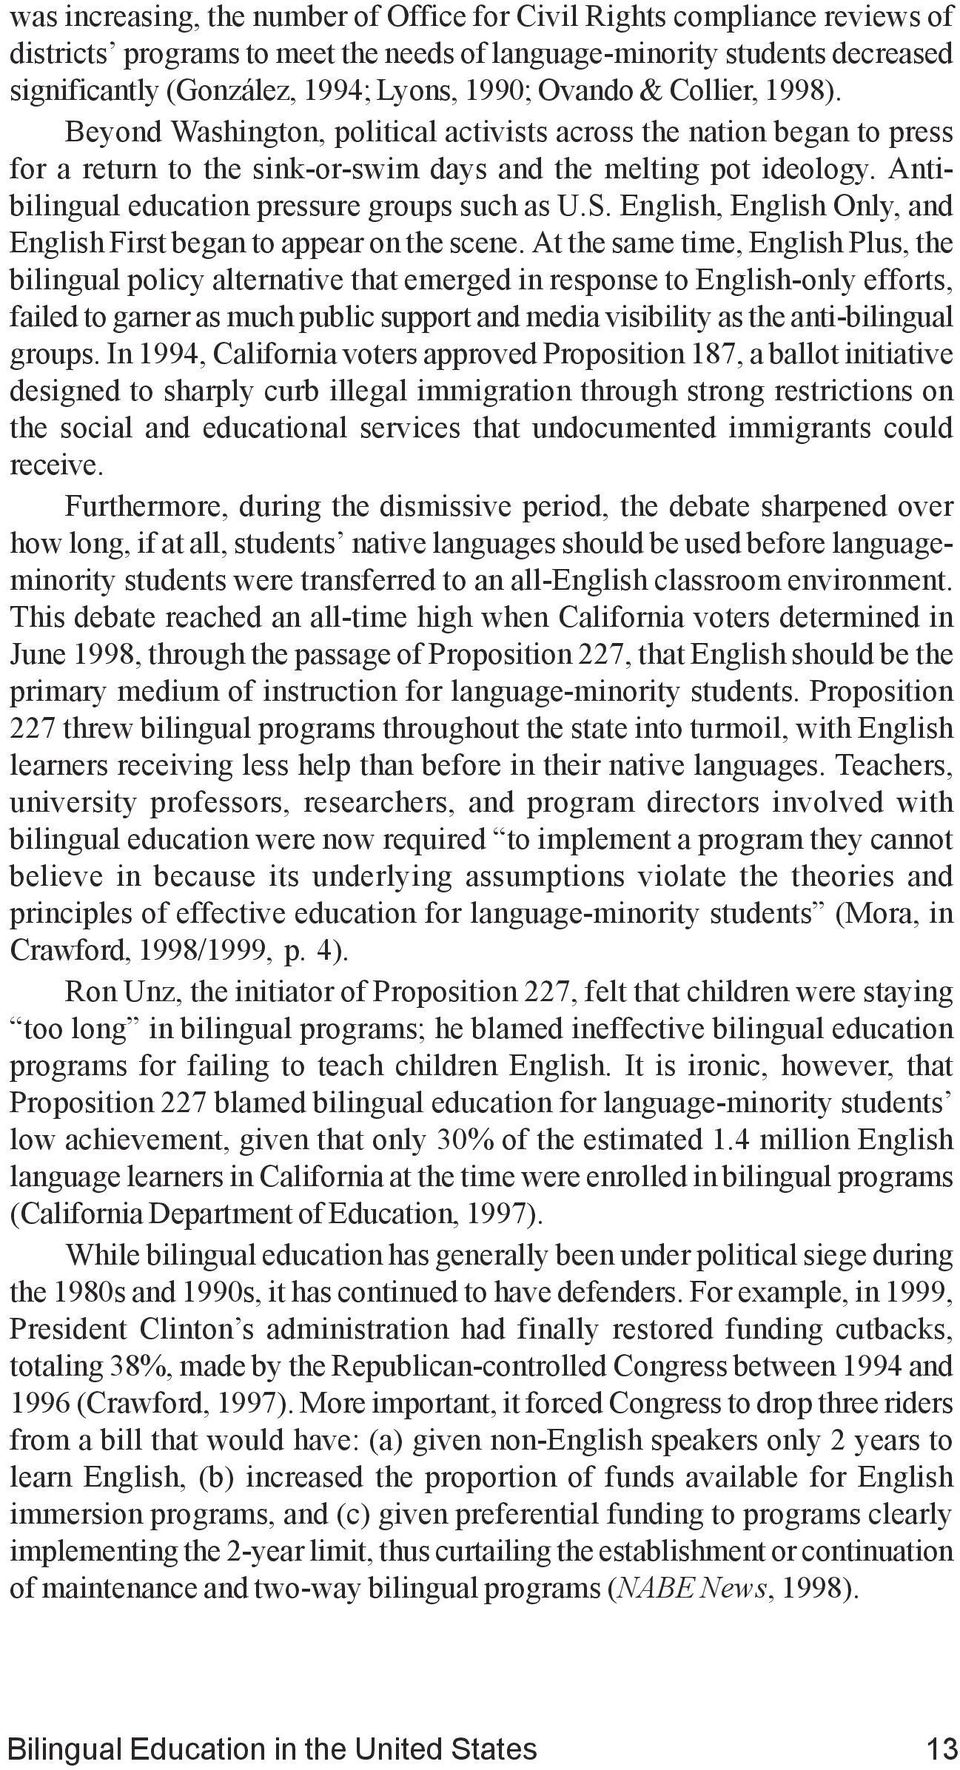 Antibilingual education pressure groups such as U.S. English, English Only, and English First began to appear on the scene.